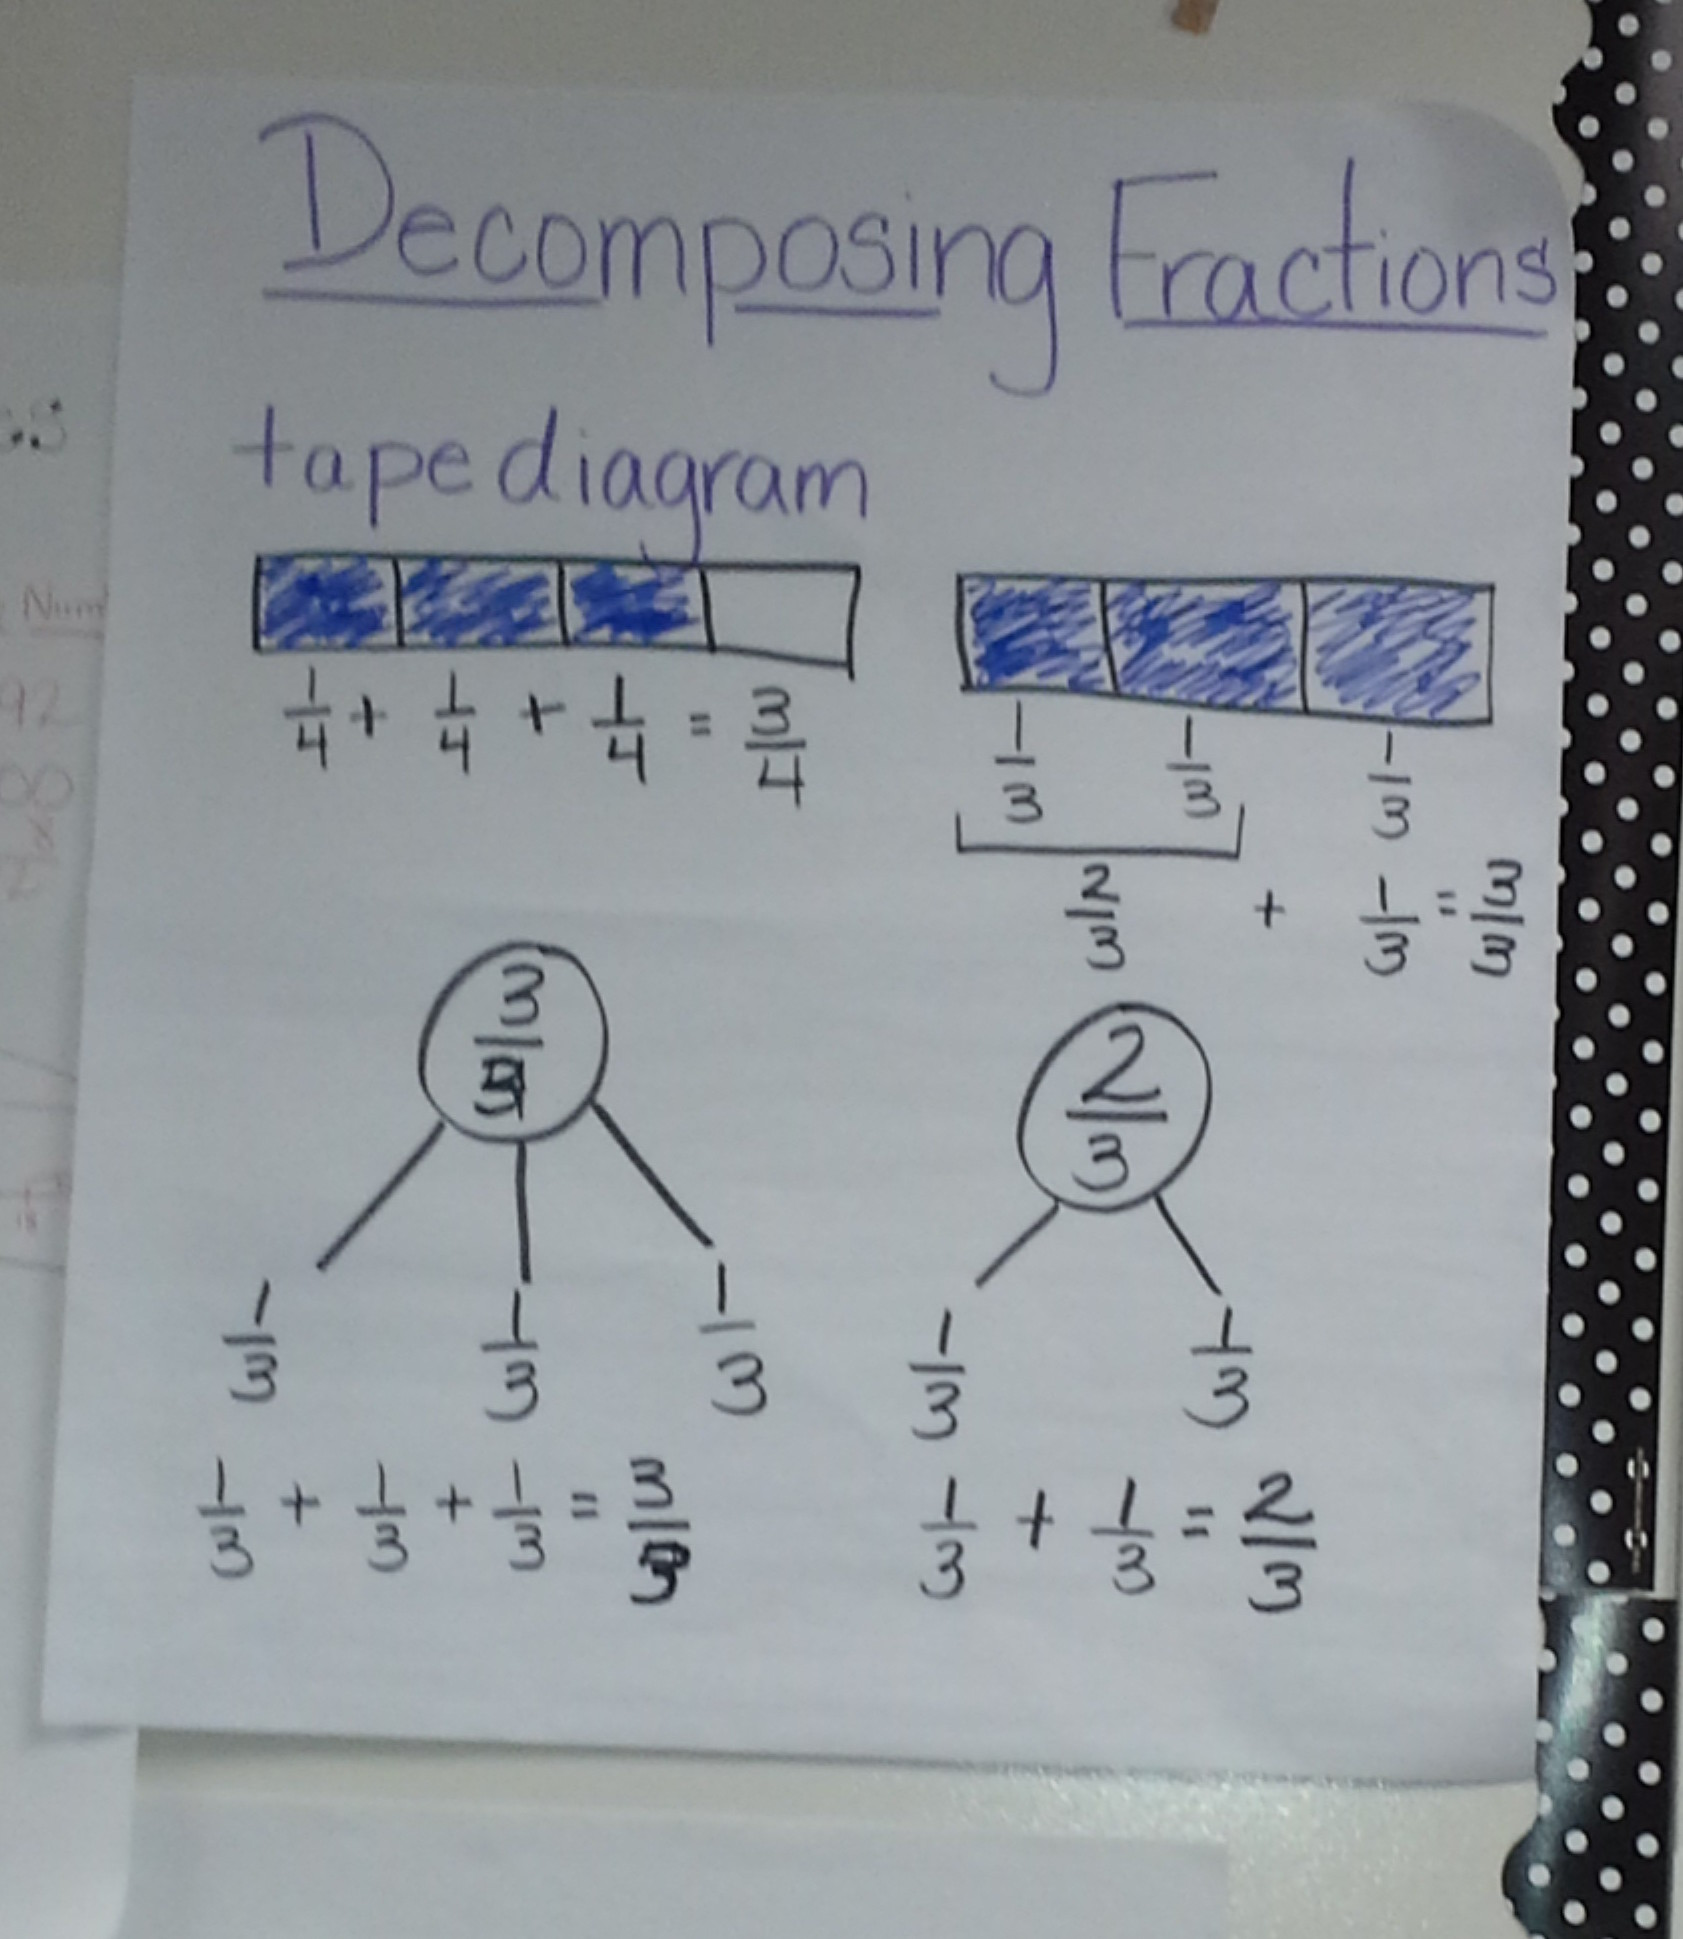 decomposing fractions : the role of the denominator - ignited